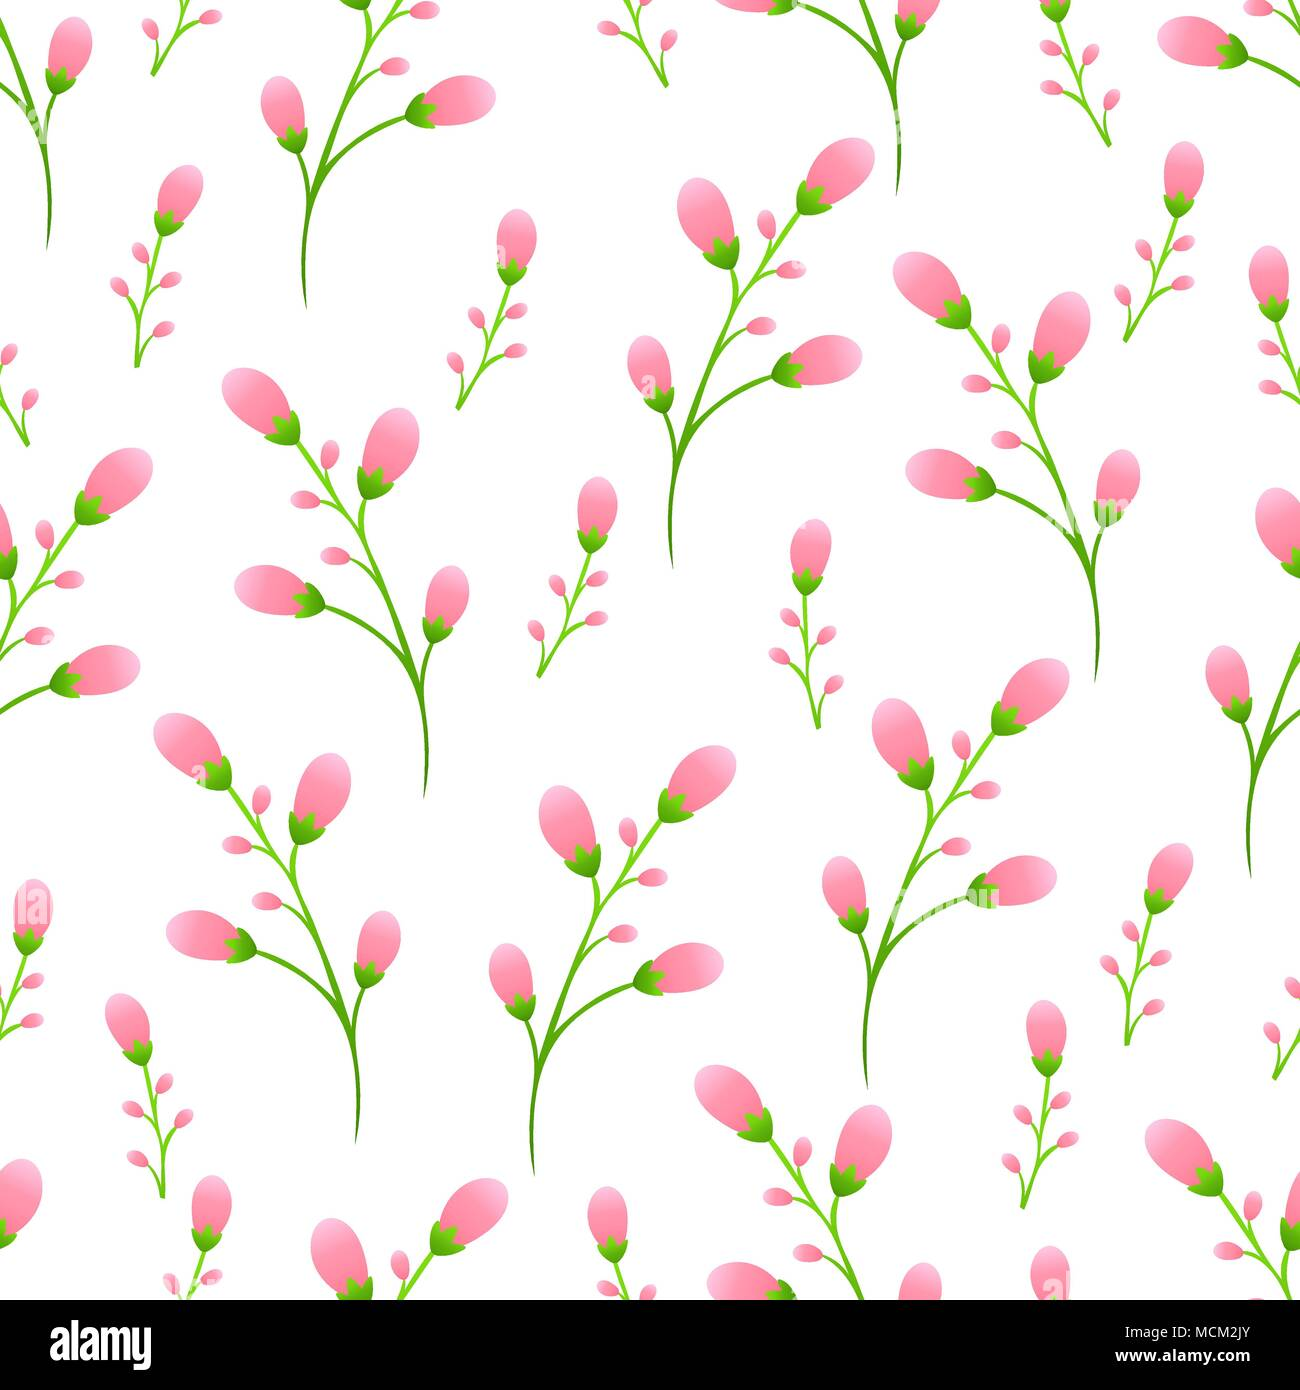 Delicate Pink Buds On The Stem Pink Flowers Seamless Pattern